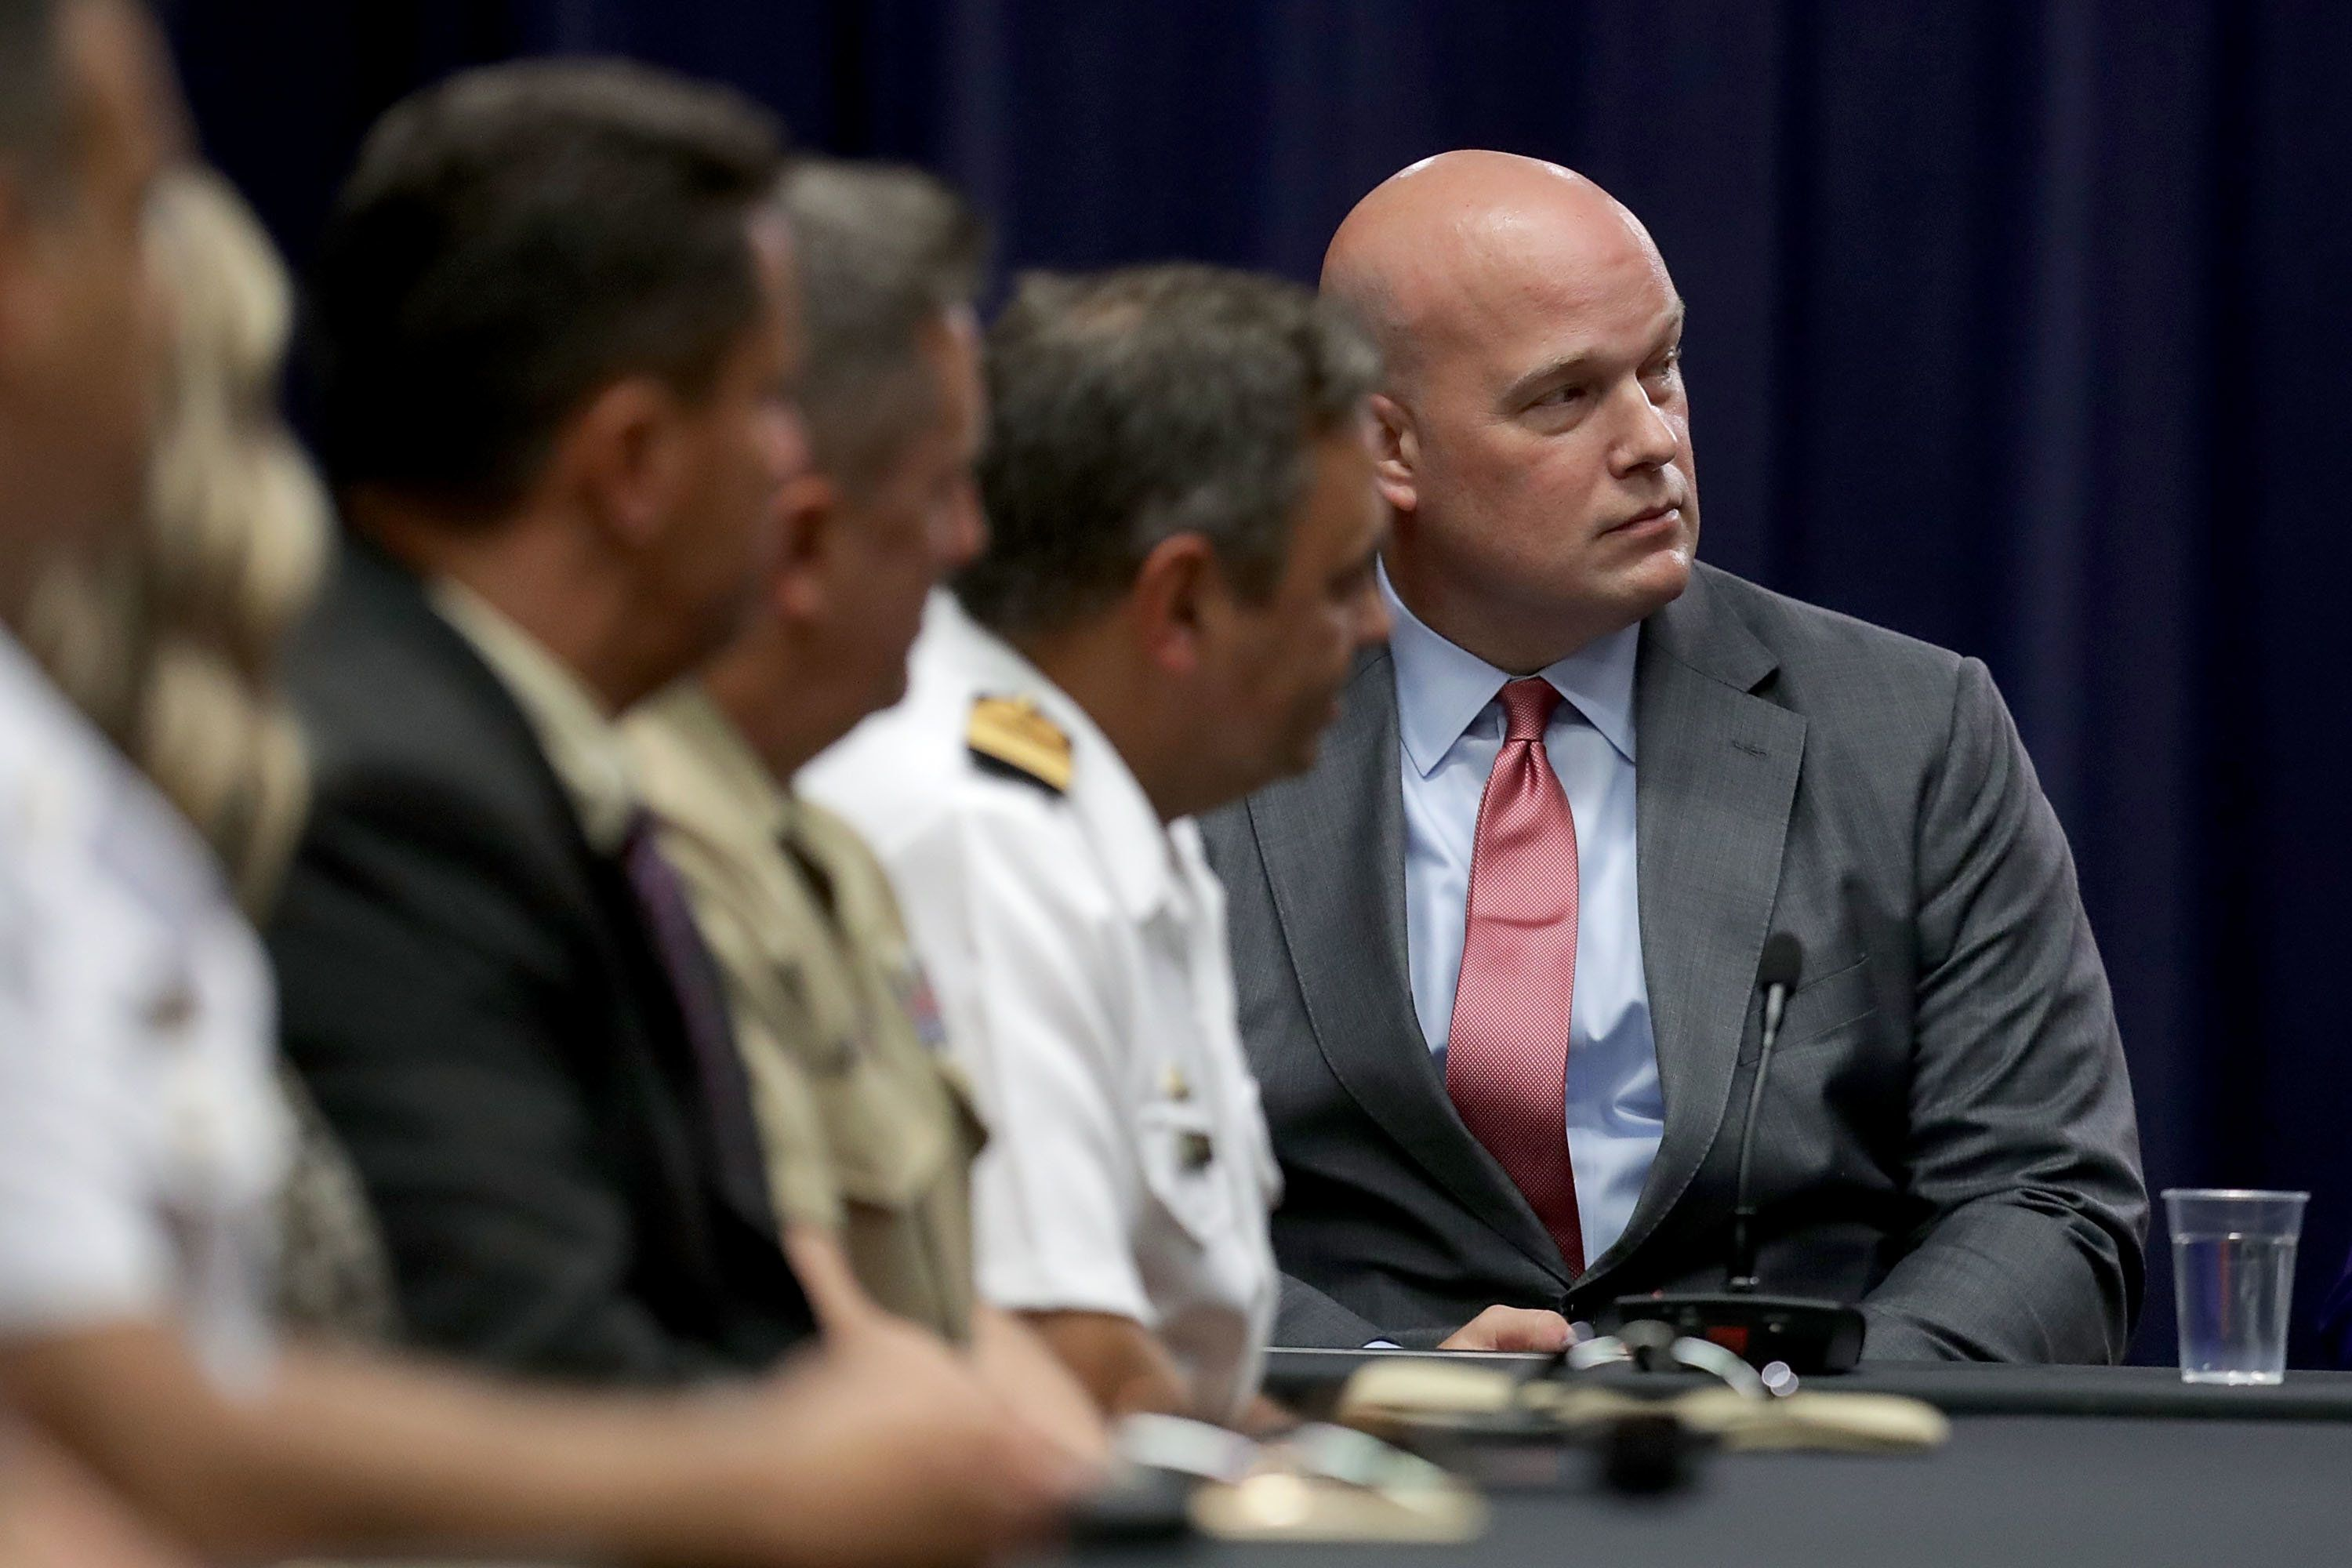 WASHINGTON, DC - AUGUST 29:  Department of Justice Chief of Staff Matt Whitaker (R) participates in a round table event with the Joint Interagency Task Force - South (JIATF-S) foreign liaison officers at the Department of Justice Kennedy building August 29, 2018 in Washington, DC. Based in Key West, Florida, the JIATF-S  is tasked with stopping the flow of illicit drugs with the cooperation of other agencies and international partners, including Brazil, Canada, Chile, Colombia, Dominican Republic, Ecuador, El Salvador, France, Honduras, Mexico, the Netherlands, Panama, Peru, Spain, Trinidad and Tobago and the United Kingdom.  (Photo by Chip Somodevilla/Getty Images)